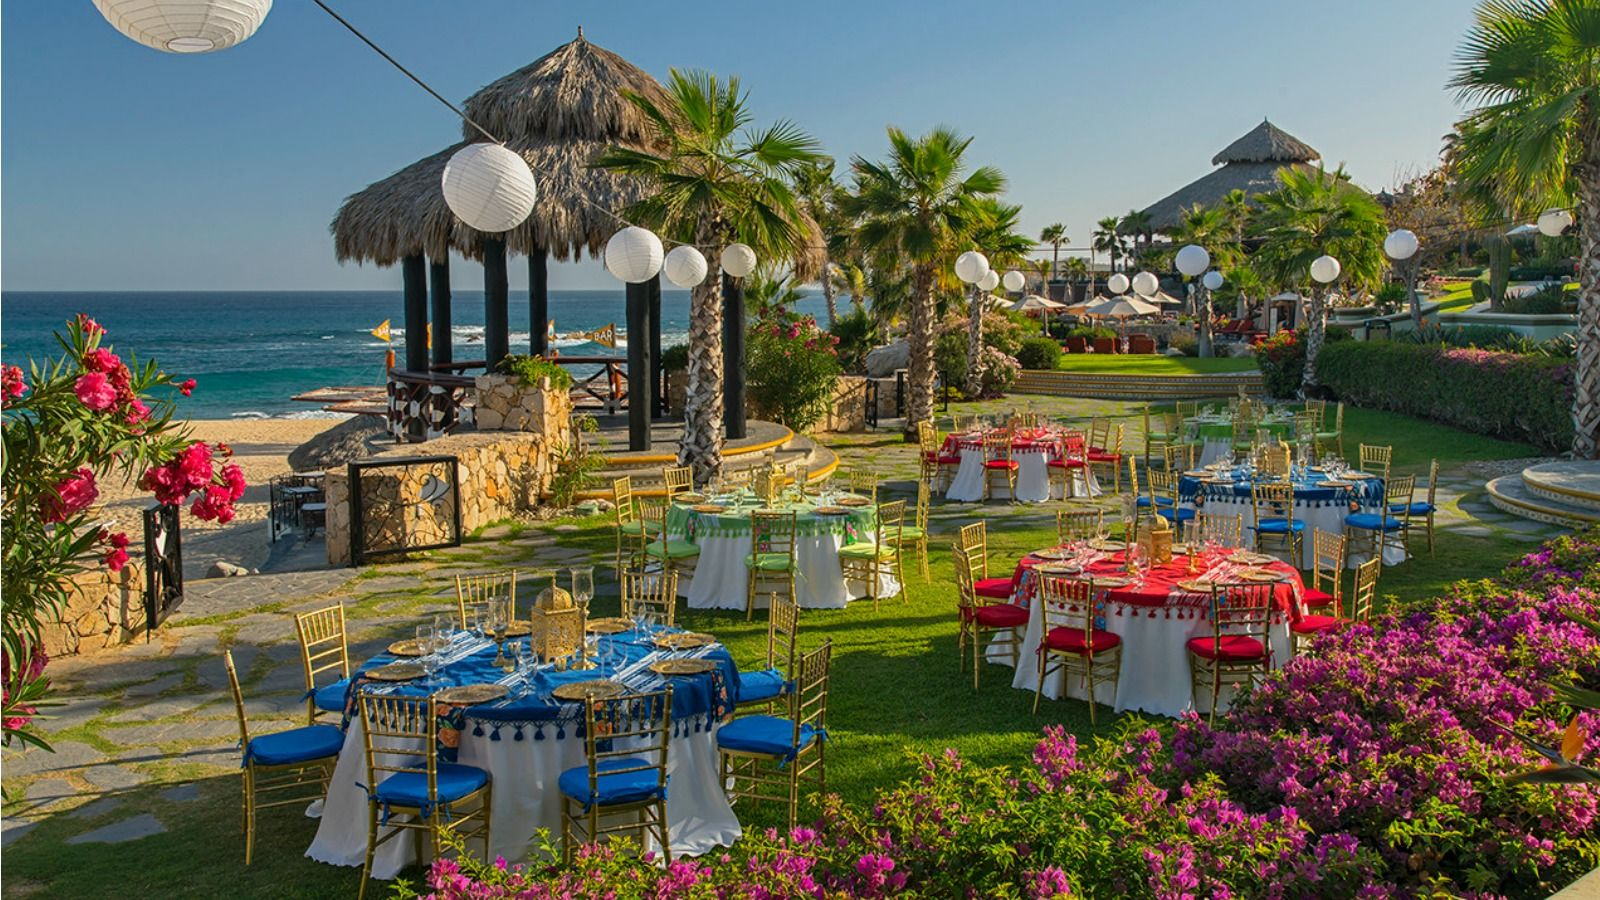 Sheraton Grand Los Cabos - Palapa Banquet Set up